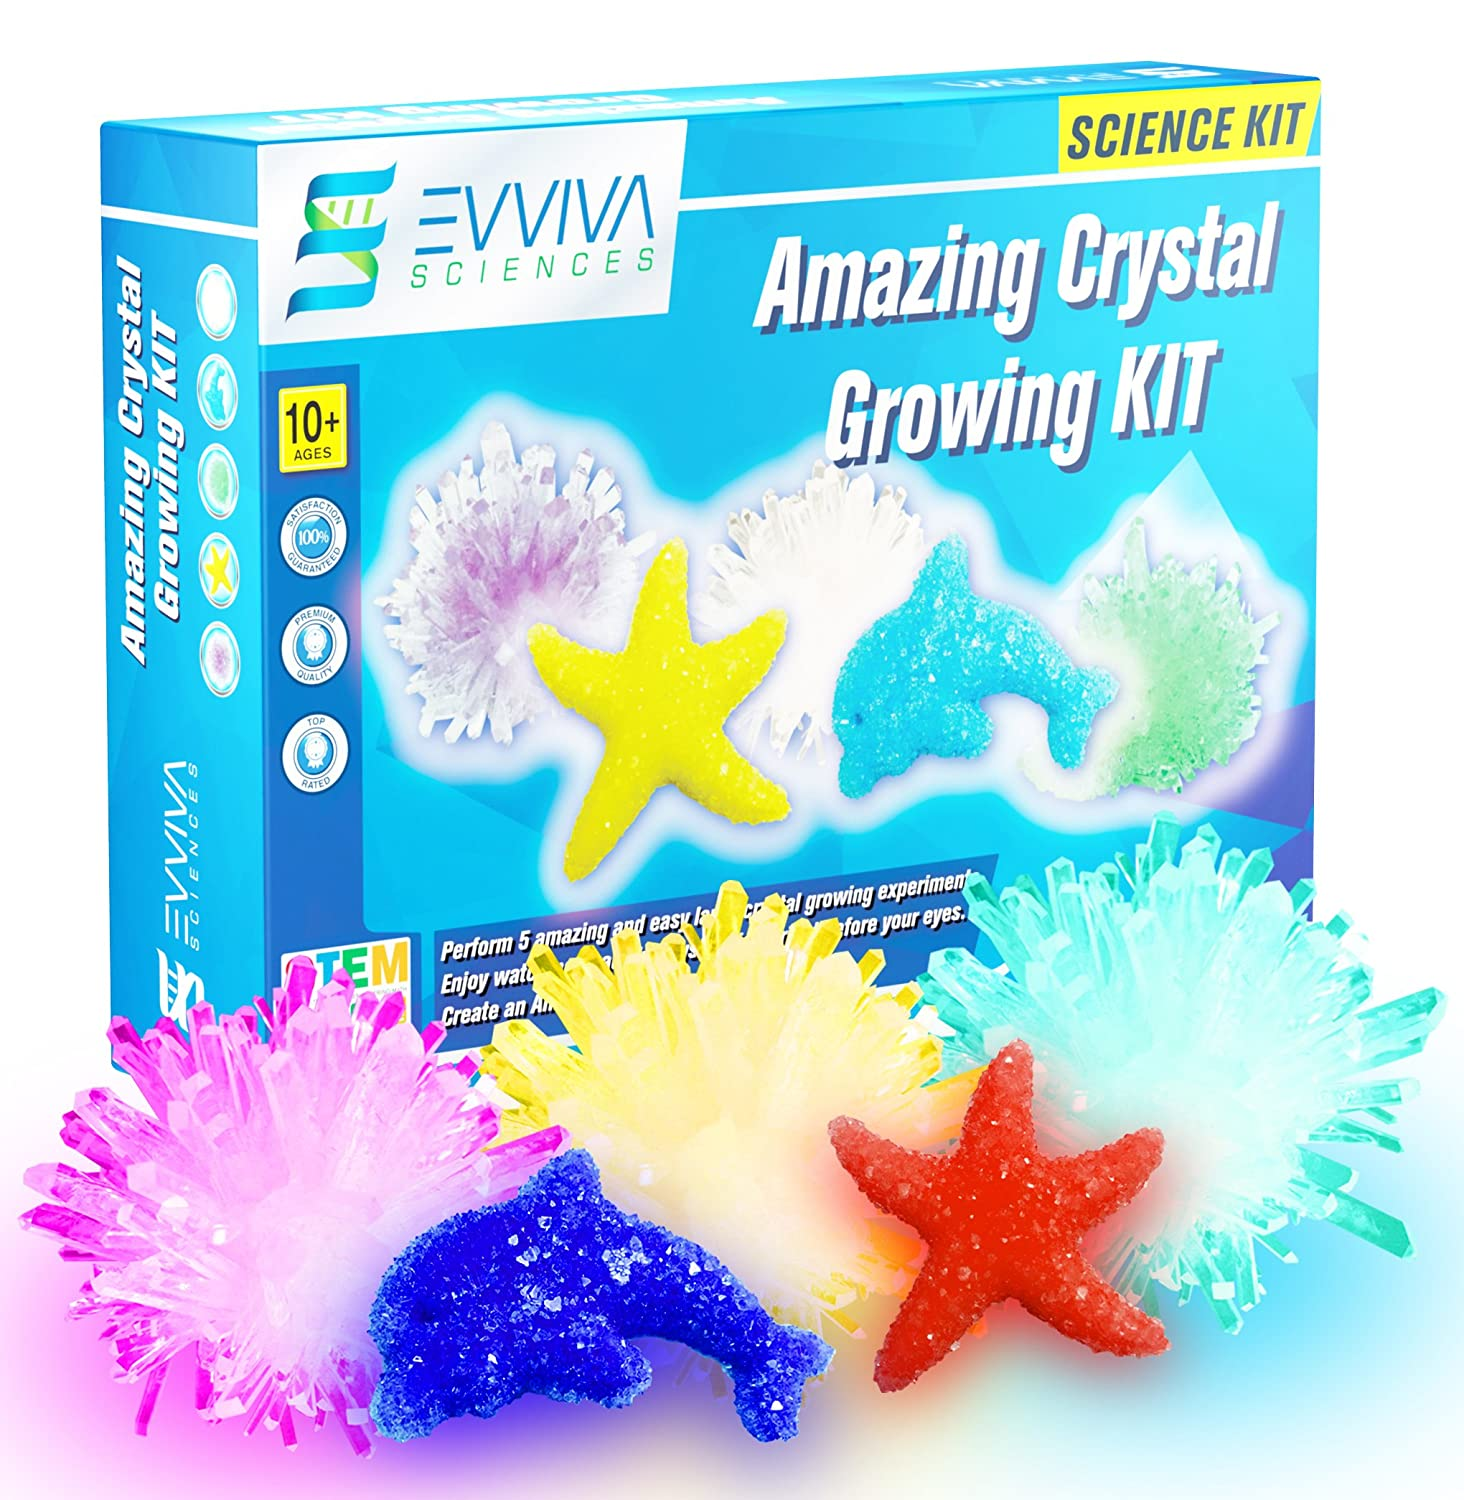 Top 13 Best Chemistry Set for Kids Reviews in 2020 12